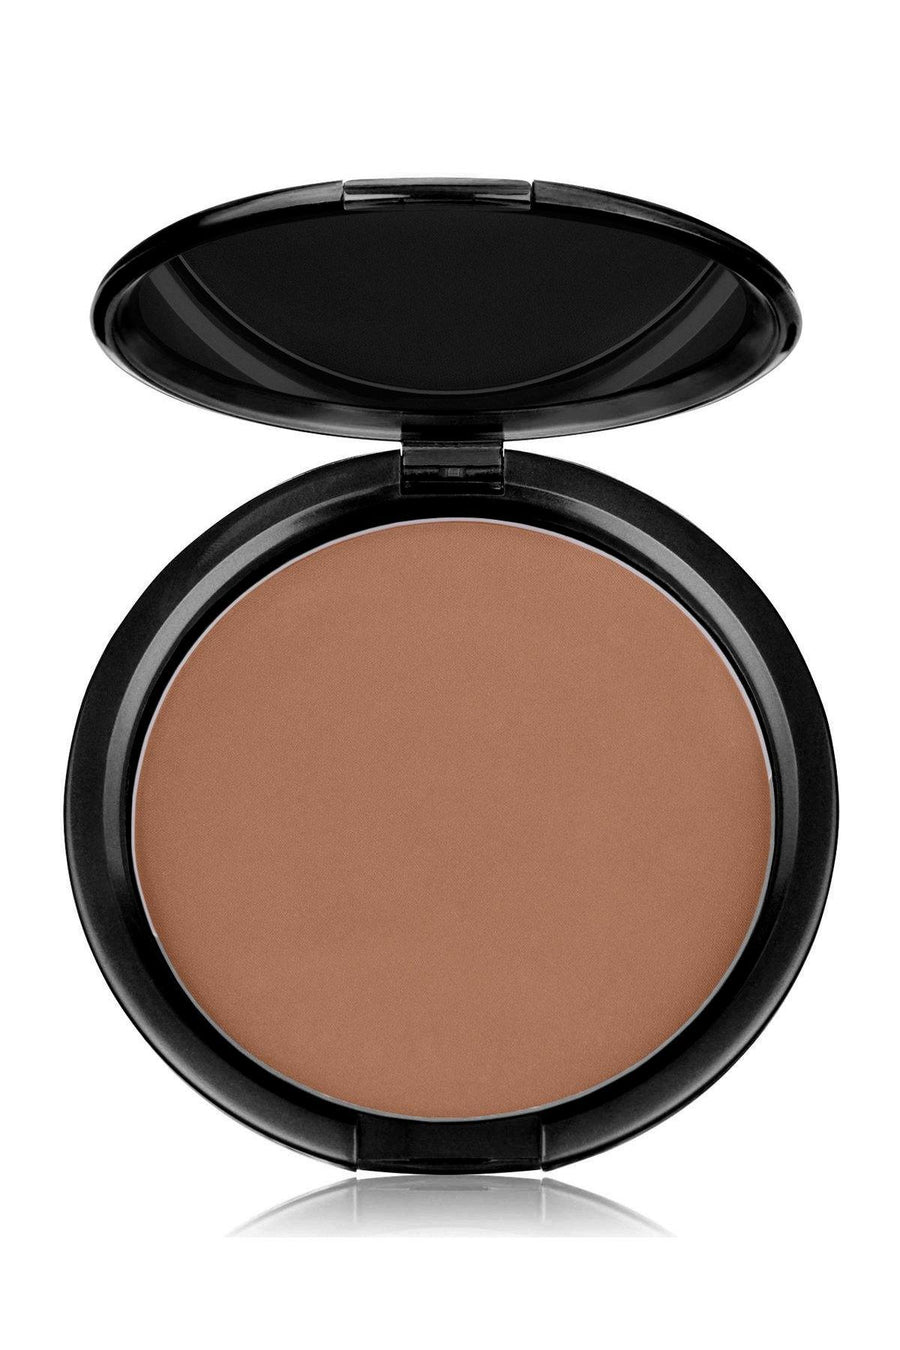 Foundation Brown Tone Medium Mineral Pressed Powder & Brush - Blend Mineral Cosmetics